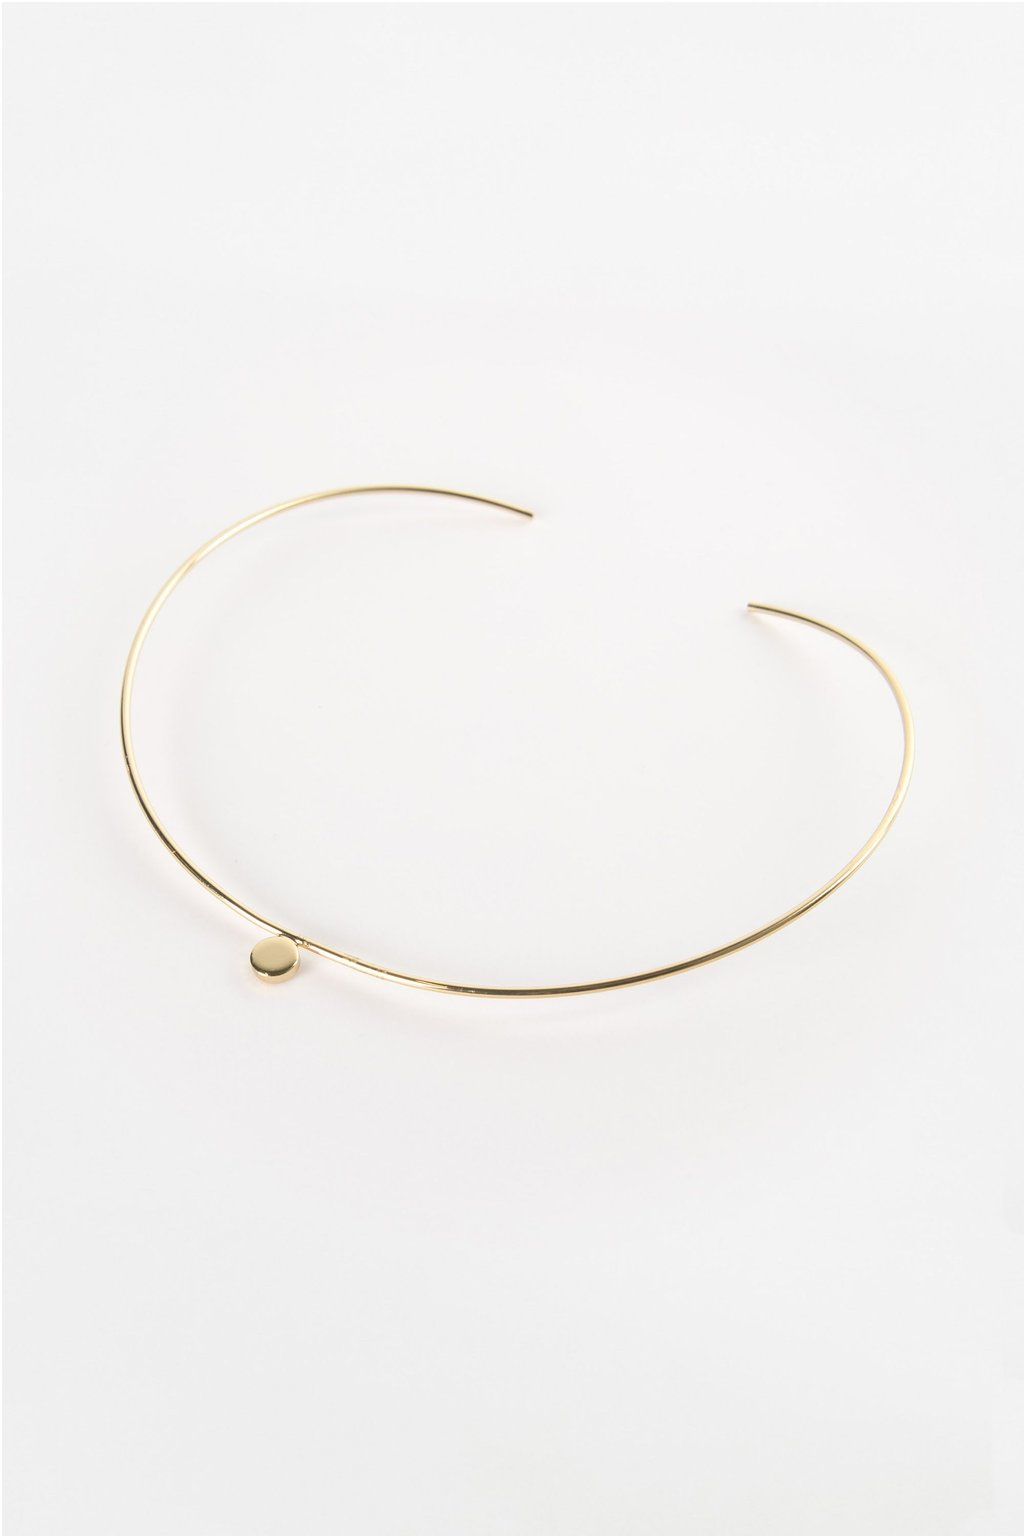 Necklace 92035 Gold 3